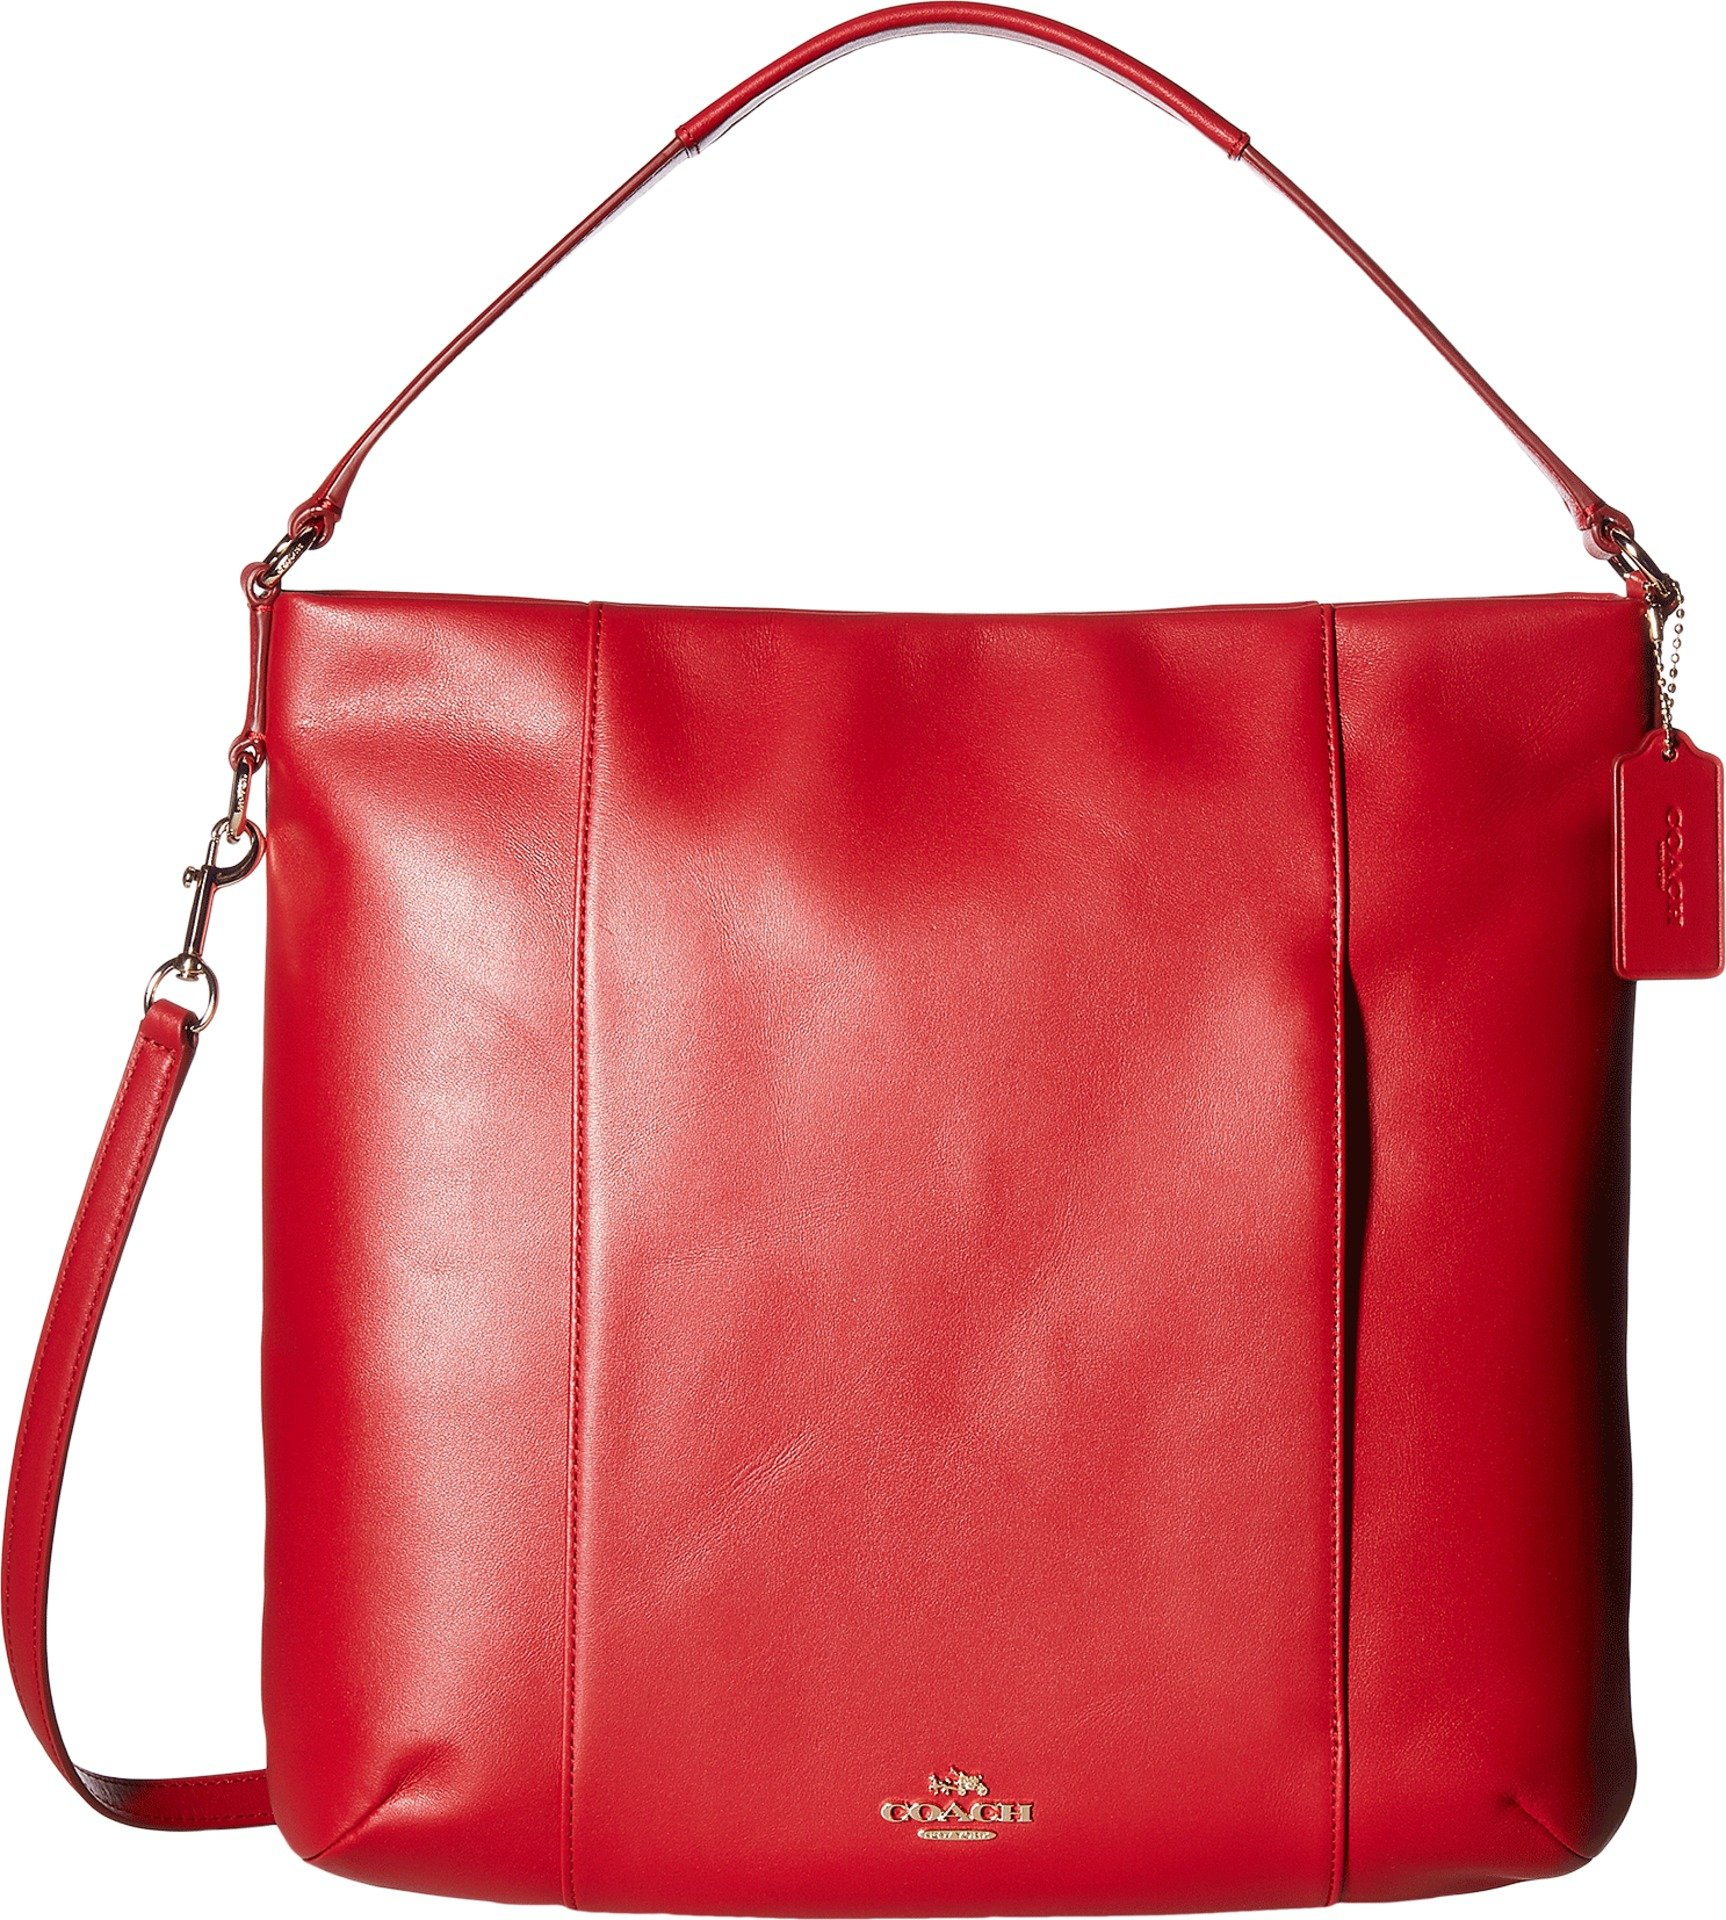 COACH Women's Leather Isabelle Shoulder Bag Classic Red One Size